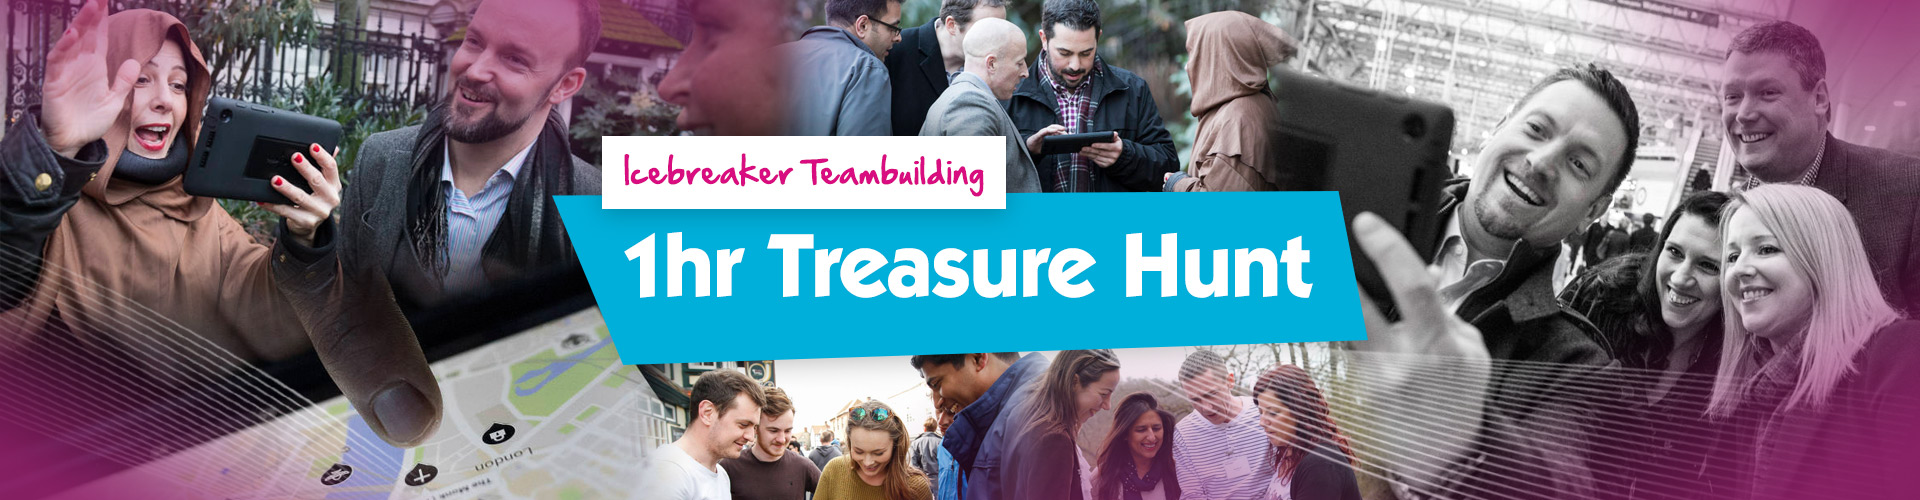 Teambuilding | 1hr Treasure Hunt